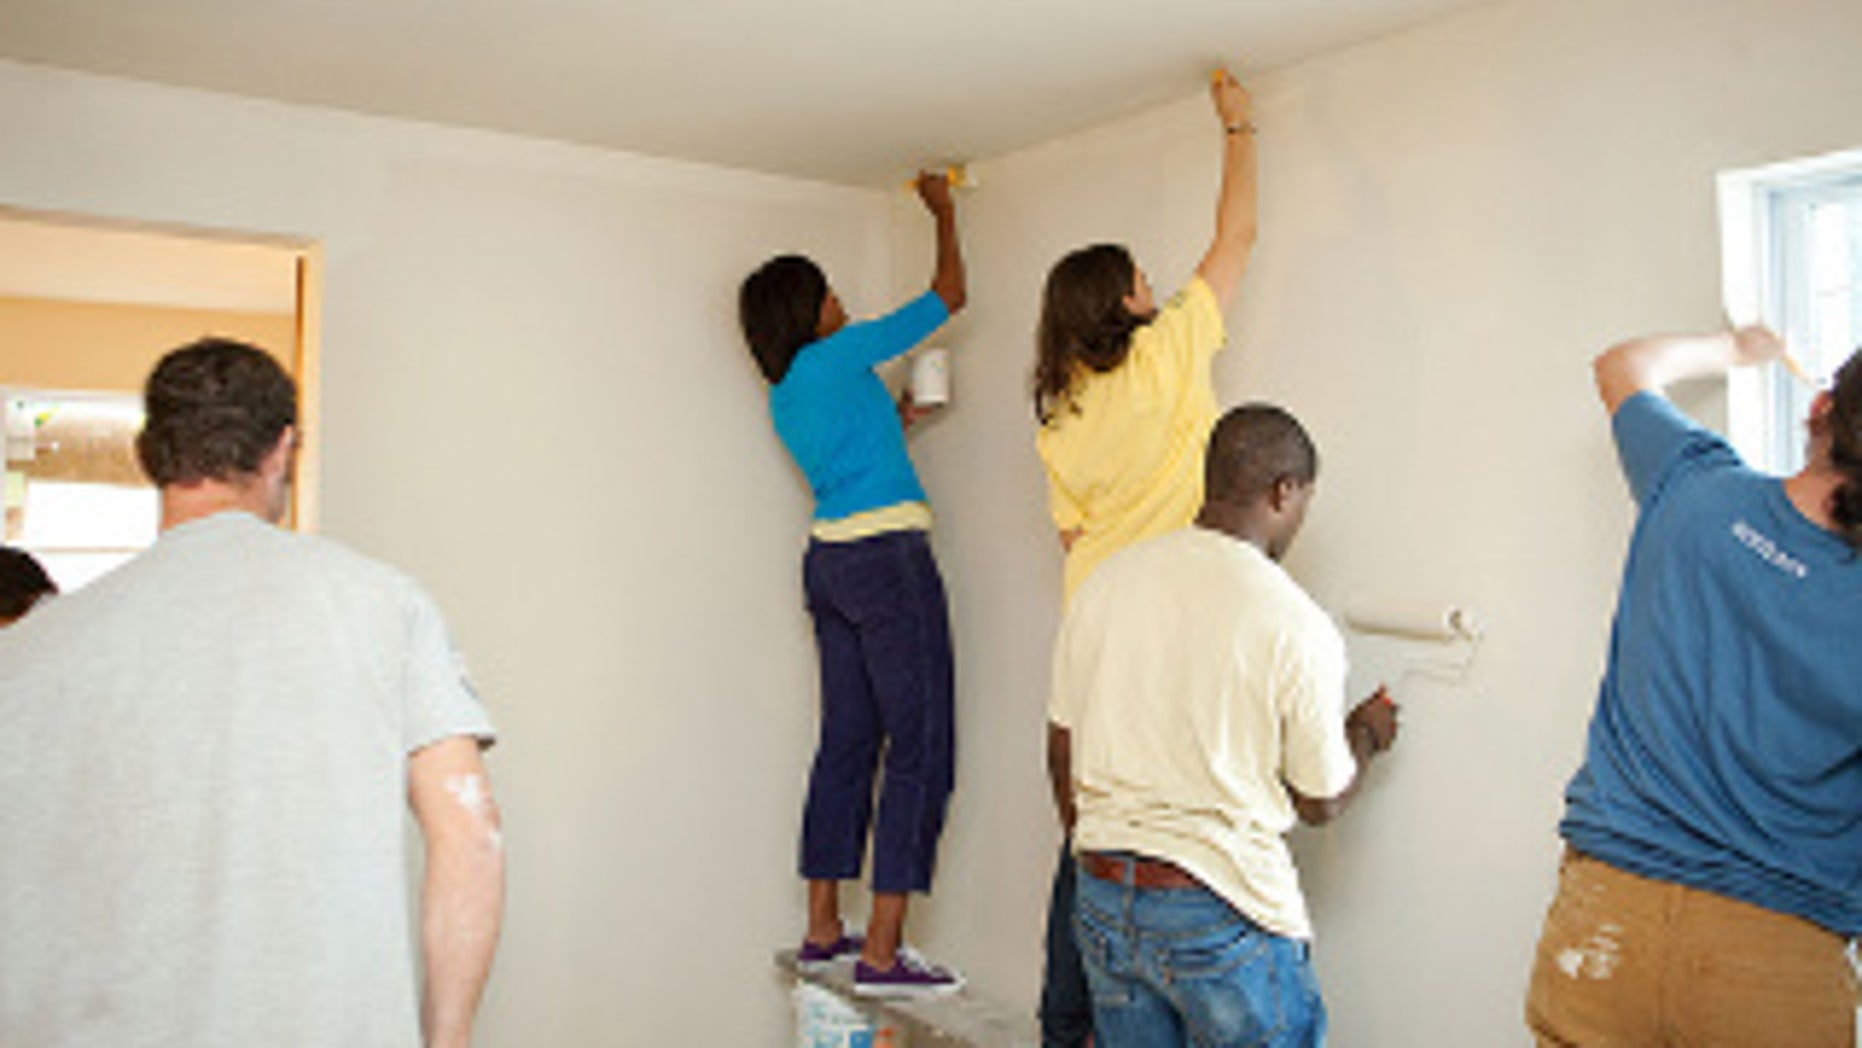 First Lady Michelle Obama participates in a United We Serve service volunteer event at a Habitat For Humanity site in Washington, D.C. (WH Photo)